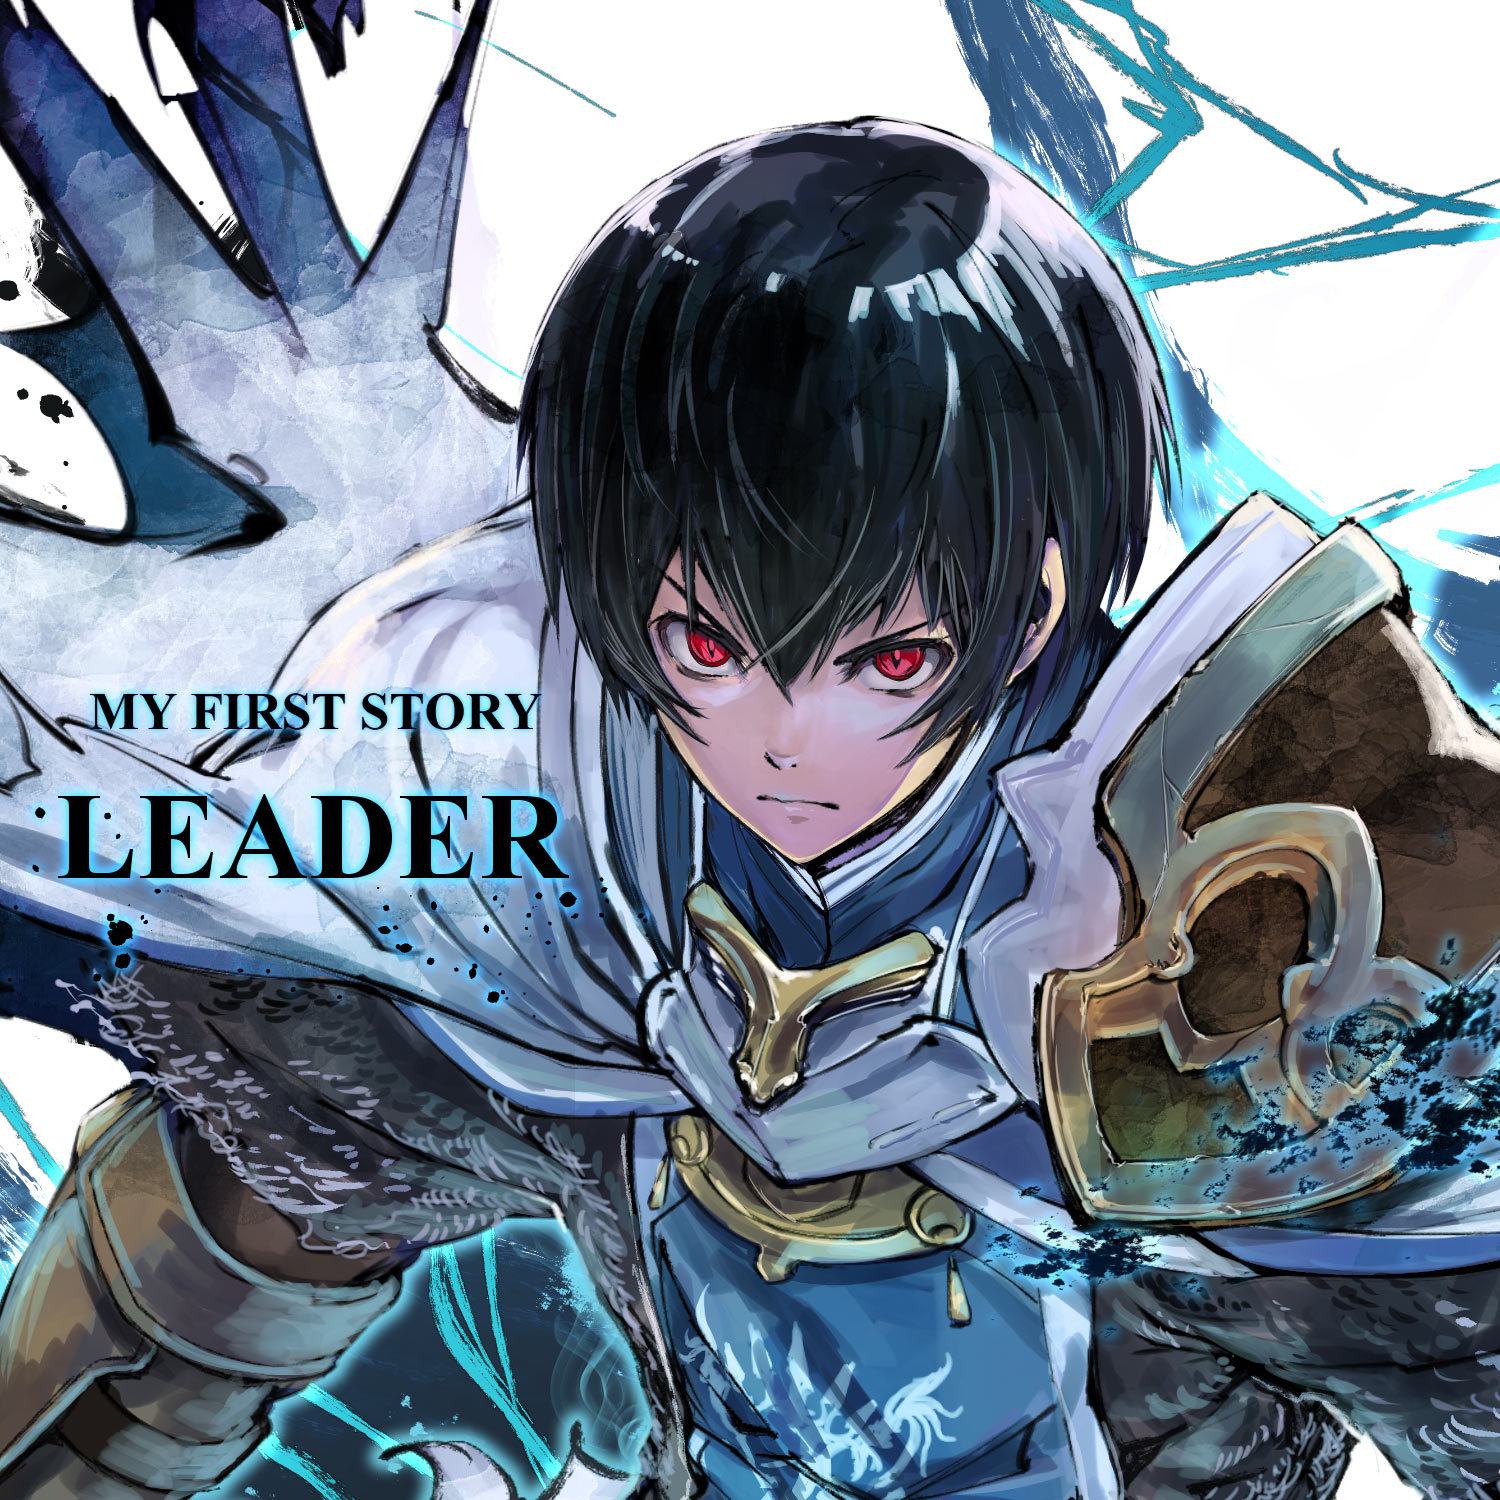 MY FIRST STORYの「LEADER」ジャケット